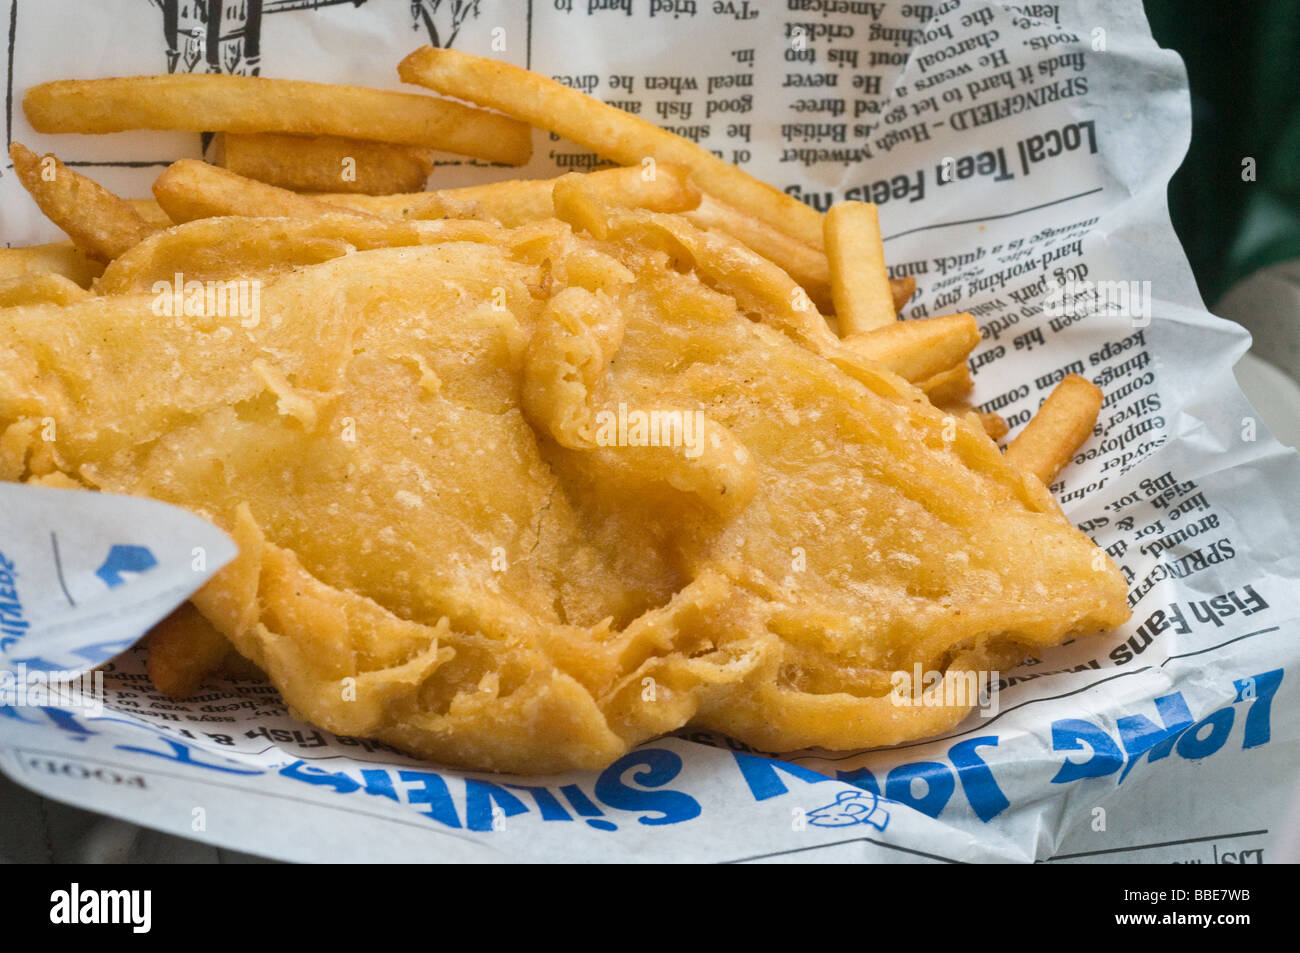 Fried fish and chips on newspaper stock photo royalty for Fish and chips newspaper